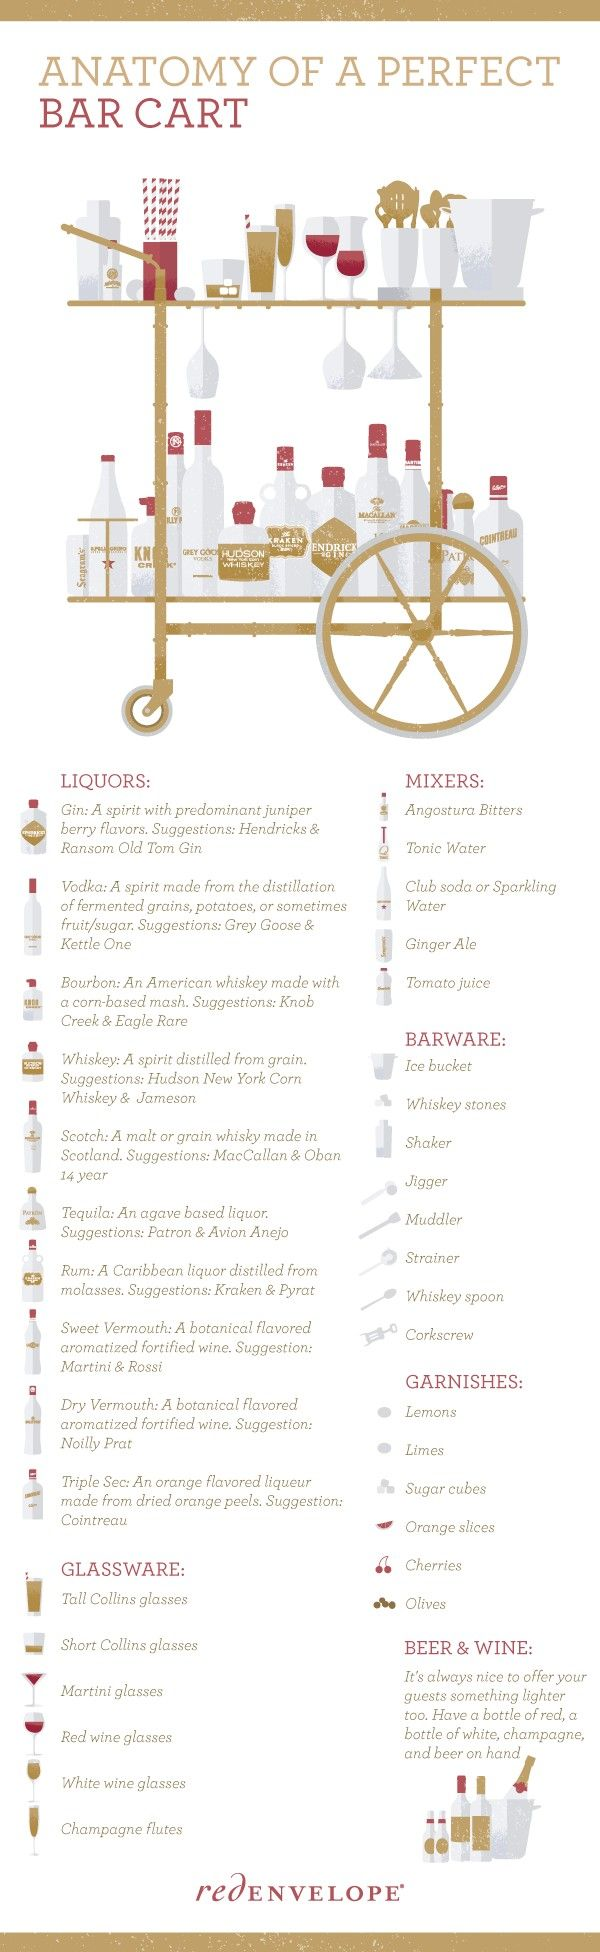 Anatomy of a Bar Cart - Got the perfect Bar Cart - Now I need to ...